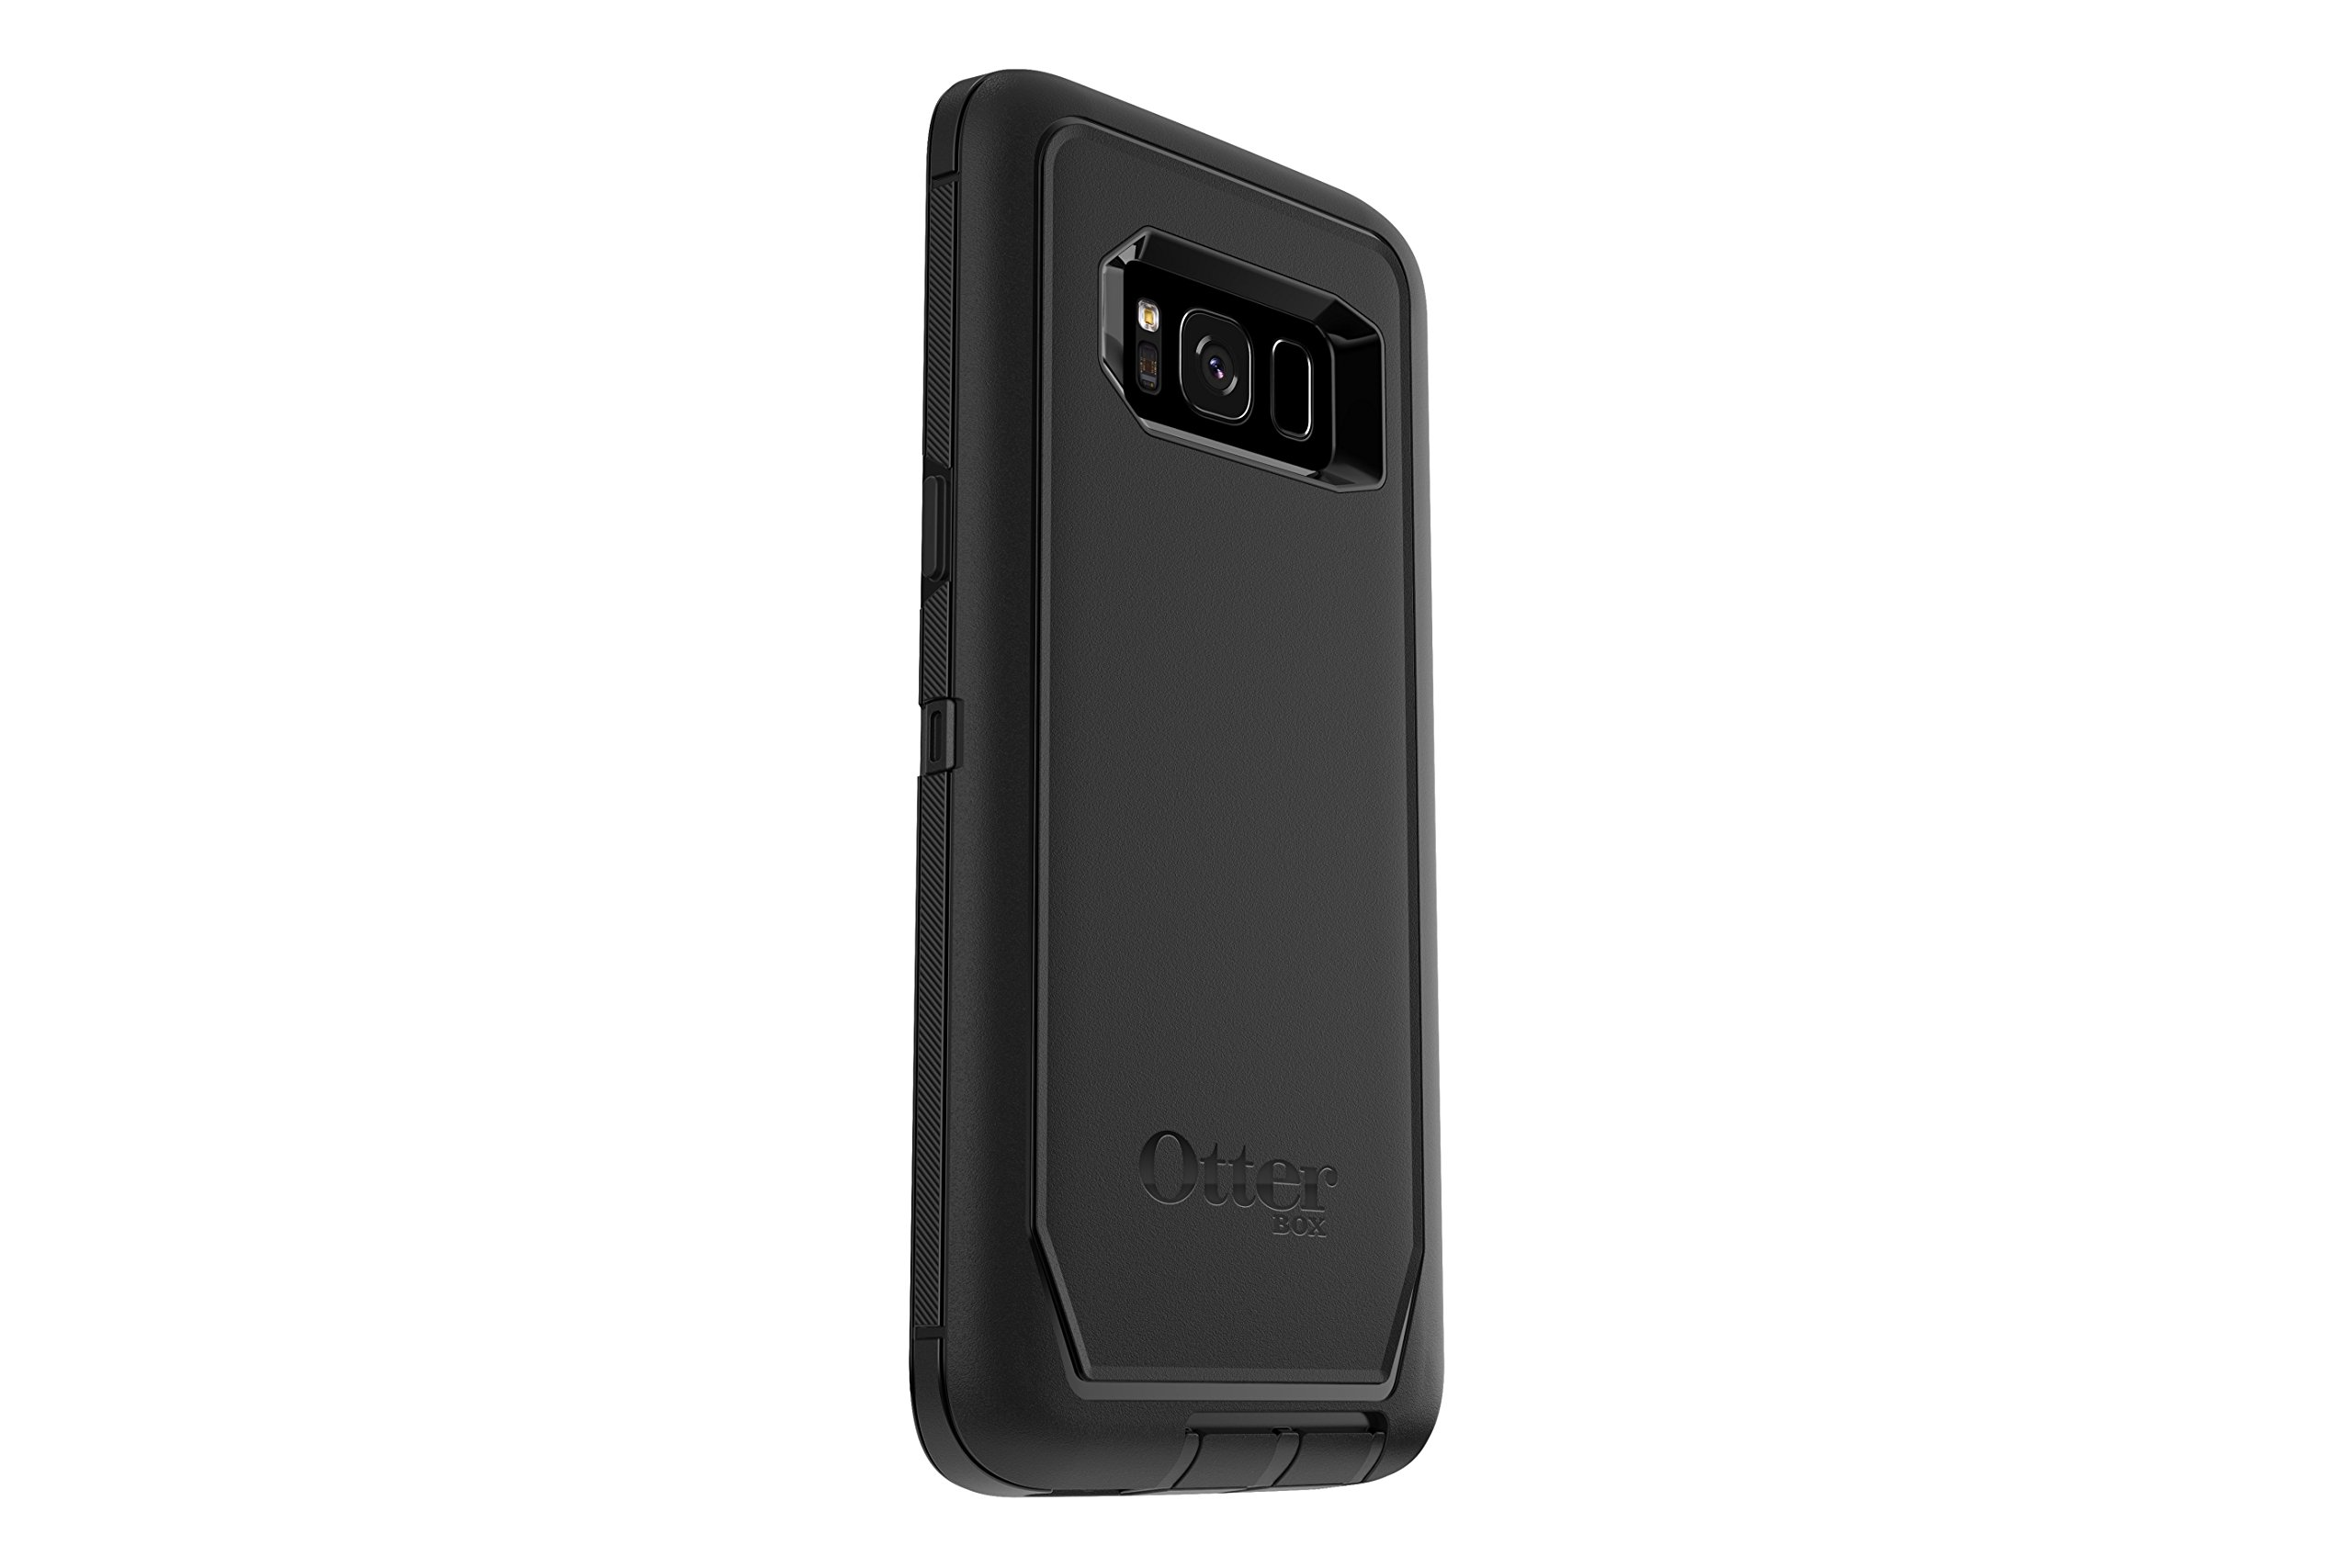 OtterBox DEFENDER SERIES SCREENLESS EDITION for Samsung Galaxy S8 - Retail Packaging - BLACK by OtterBox